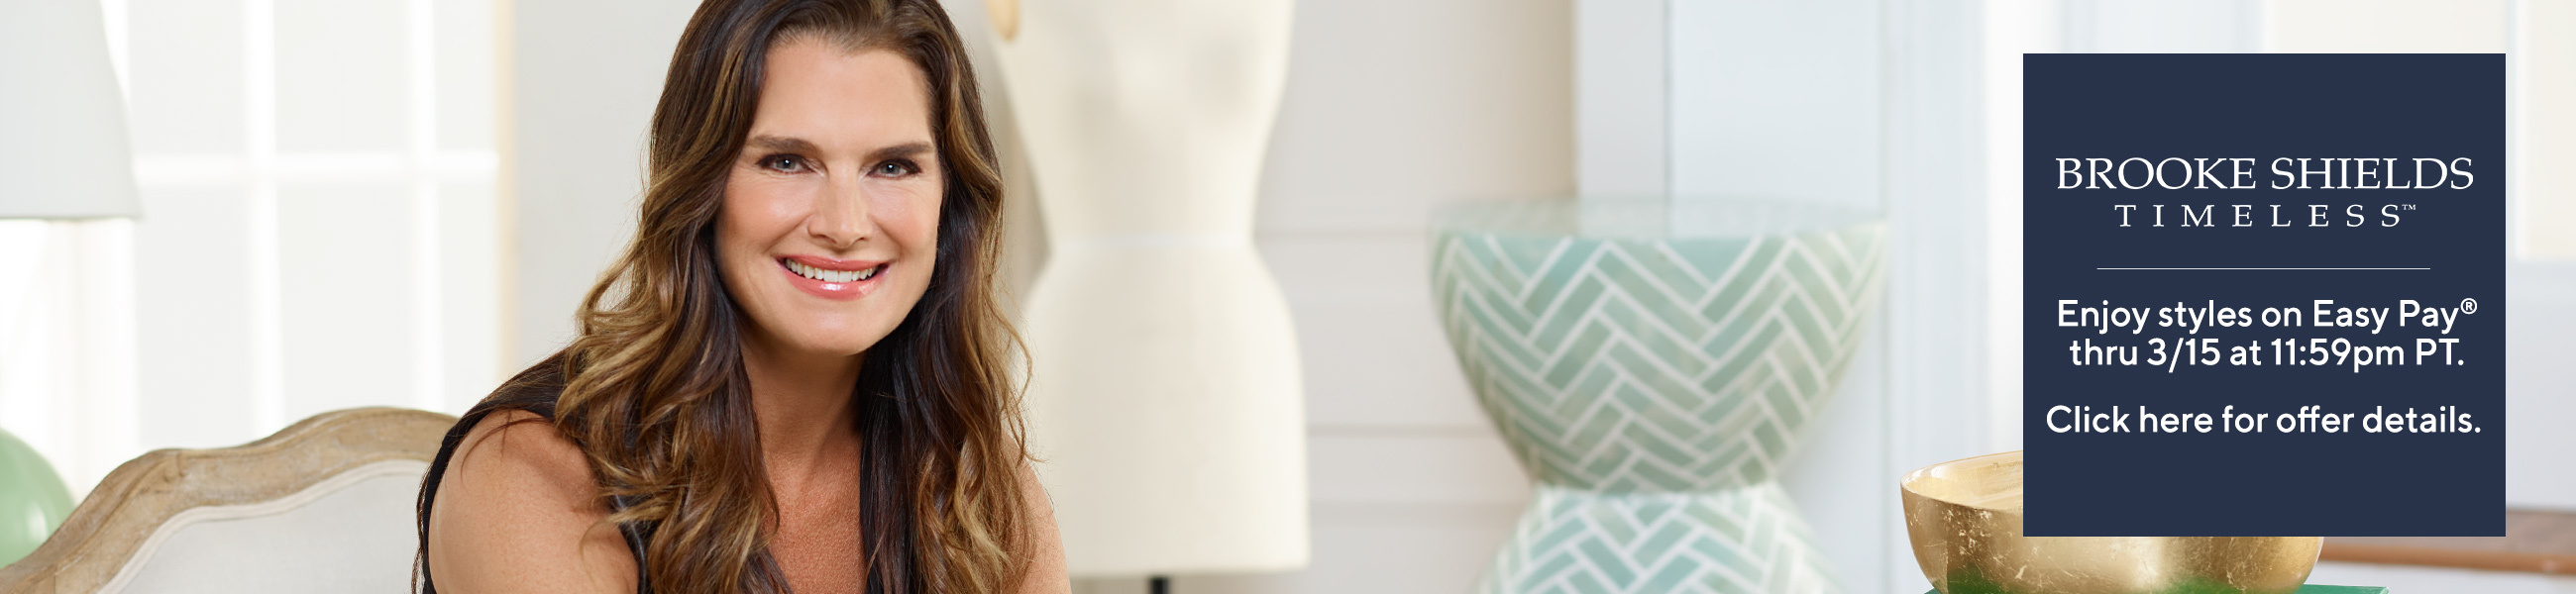 Brook Shields Enjoy styles on Easy Pay® thru 3/15 at 11:59pm PT.   Click here for offer details.